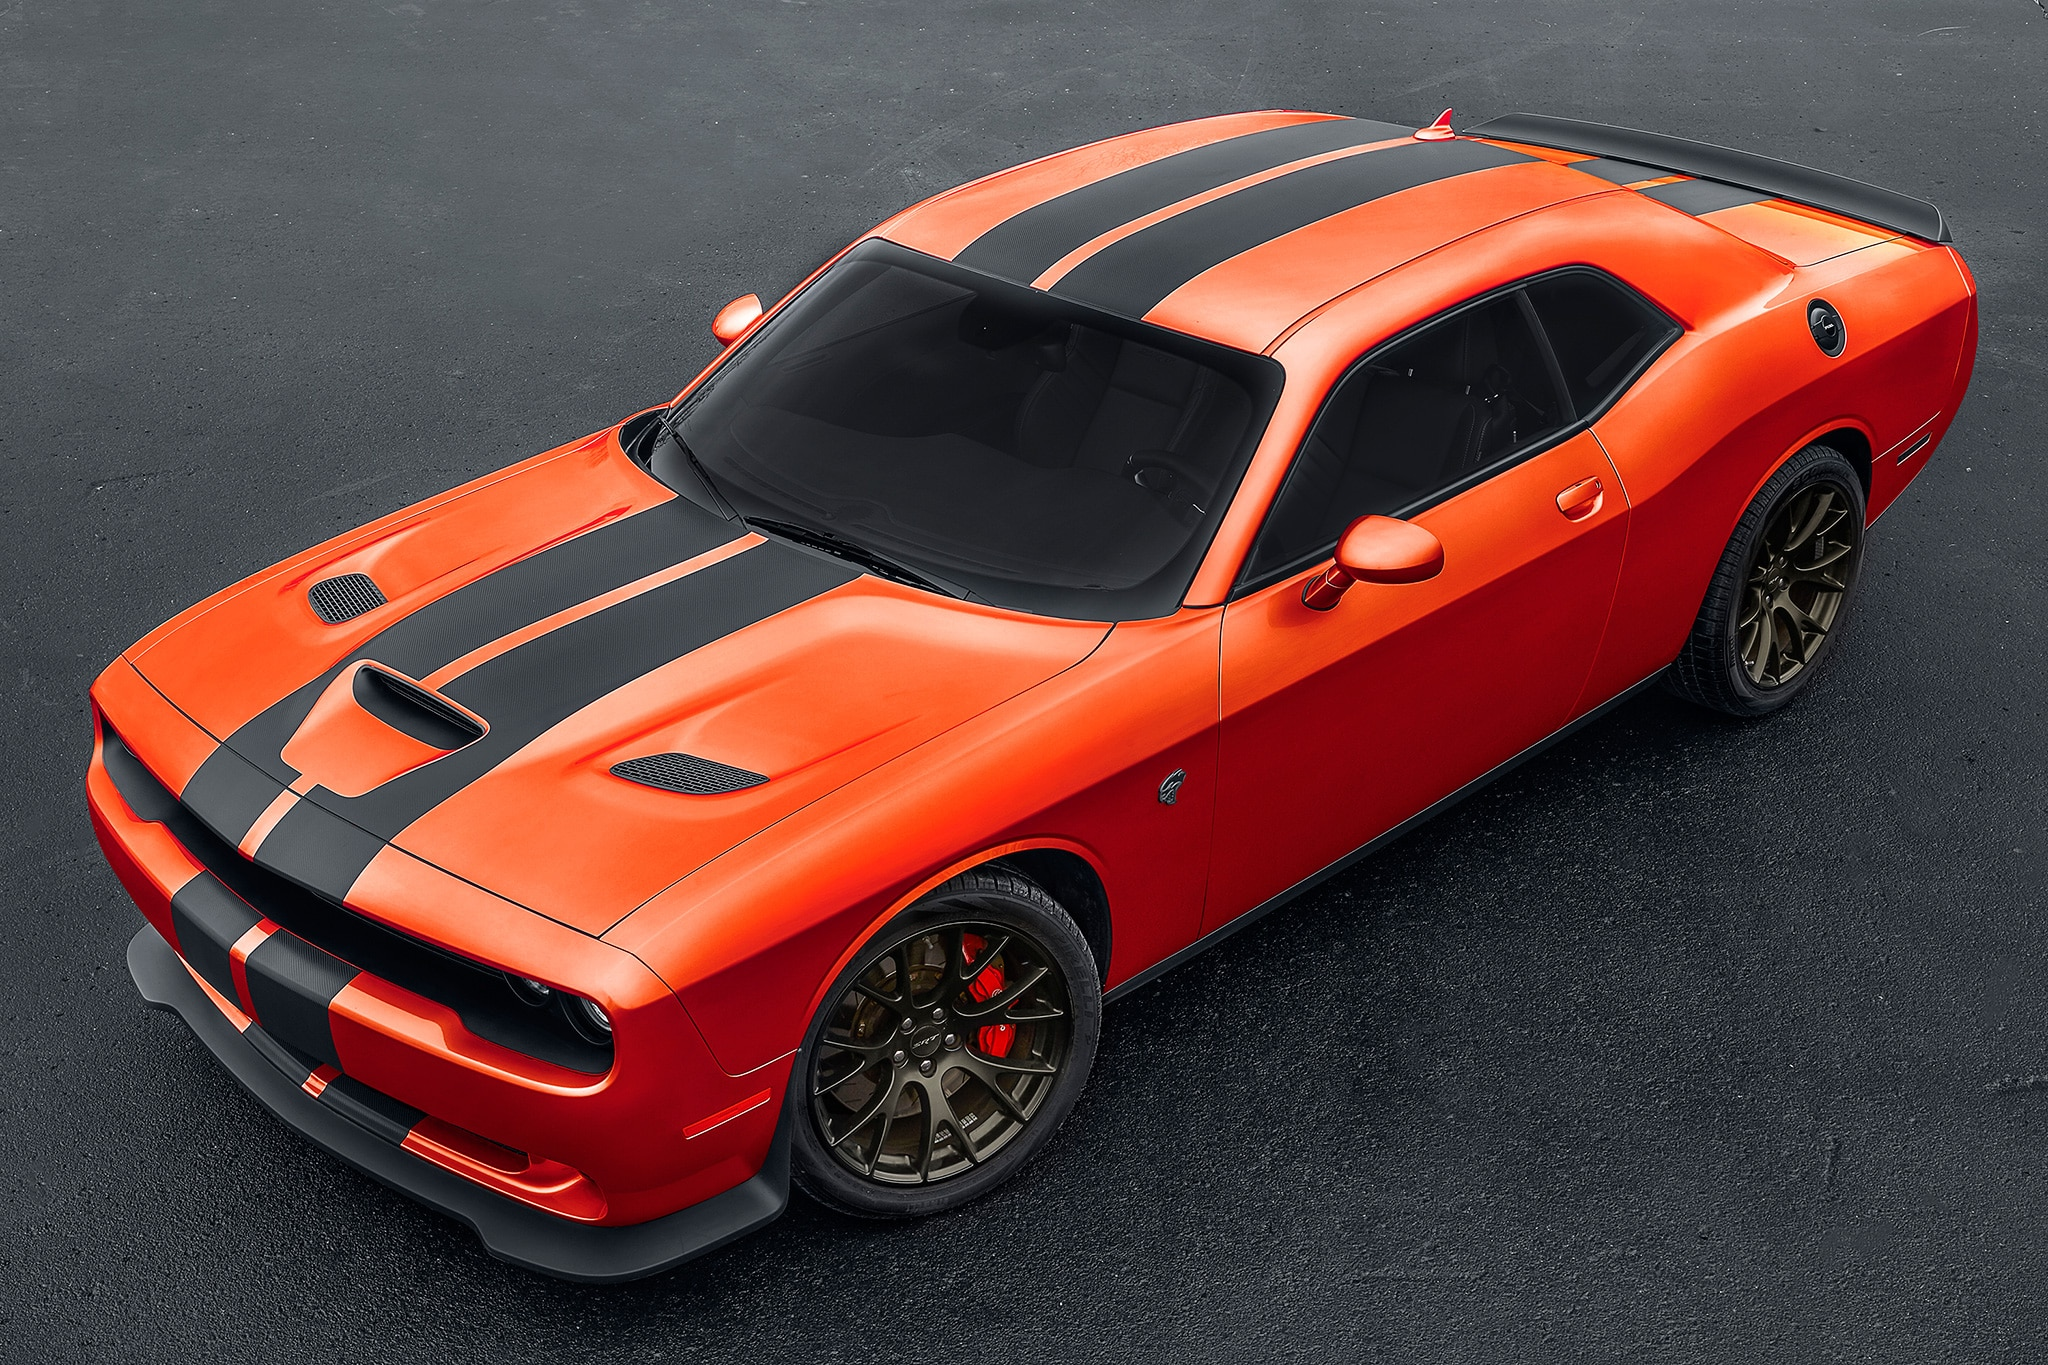 vin diesel possibly leaks the 2018 dodge challenger srt demon on facebook automobile magazine. Black Bedroom Furniture Sets. Home Design Ideas